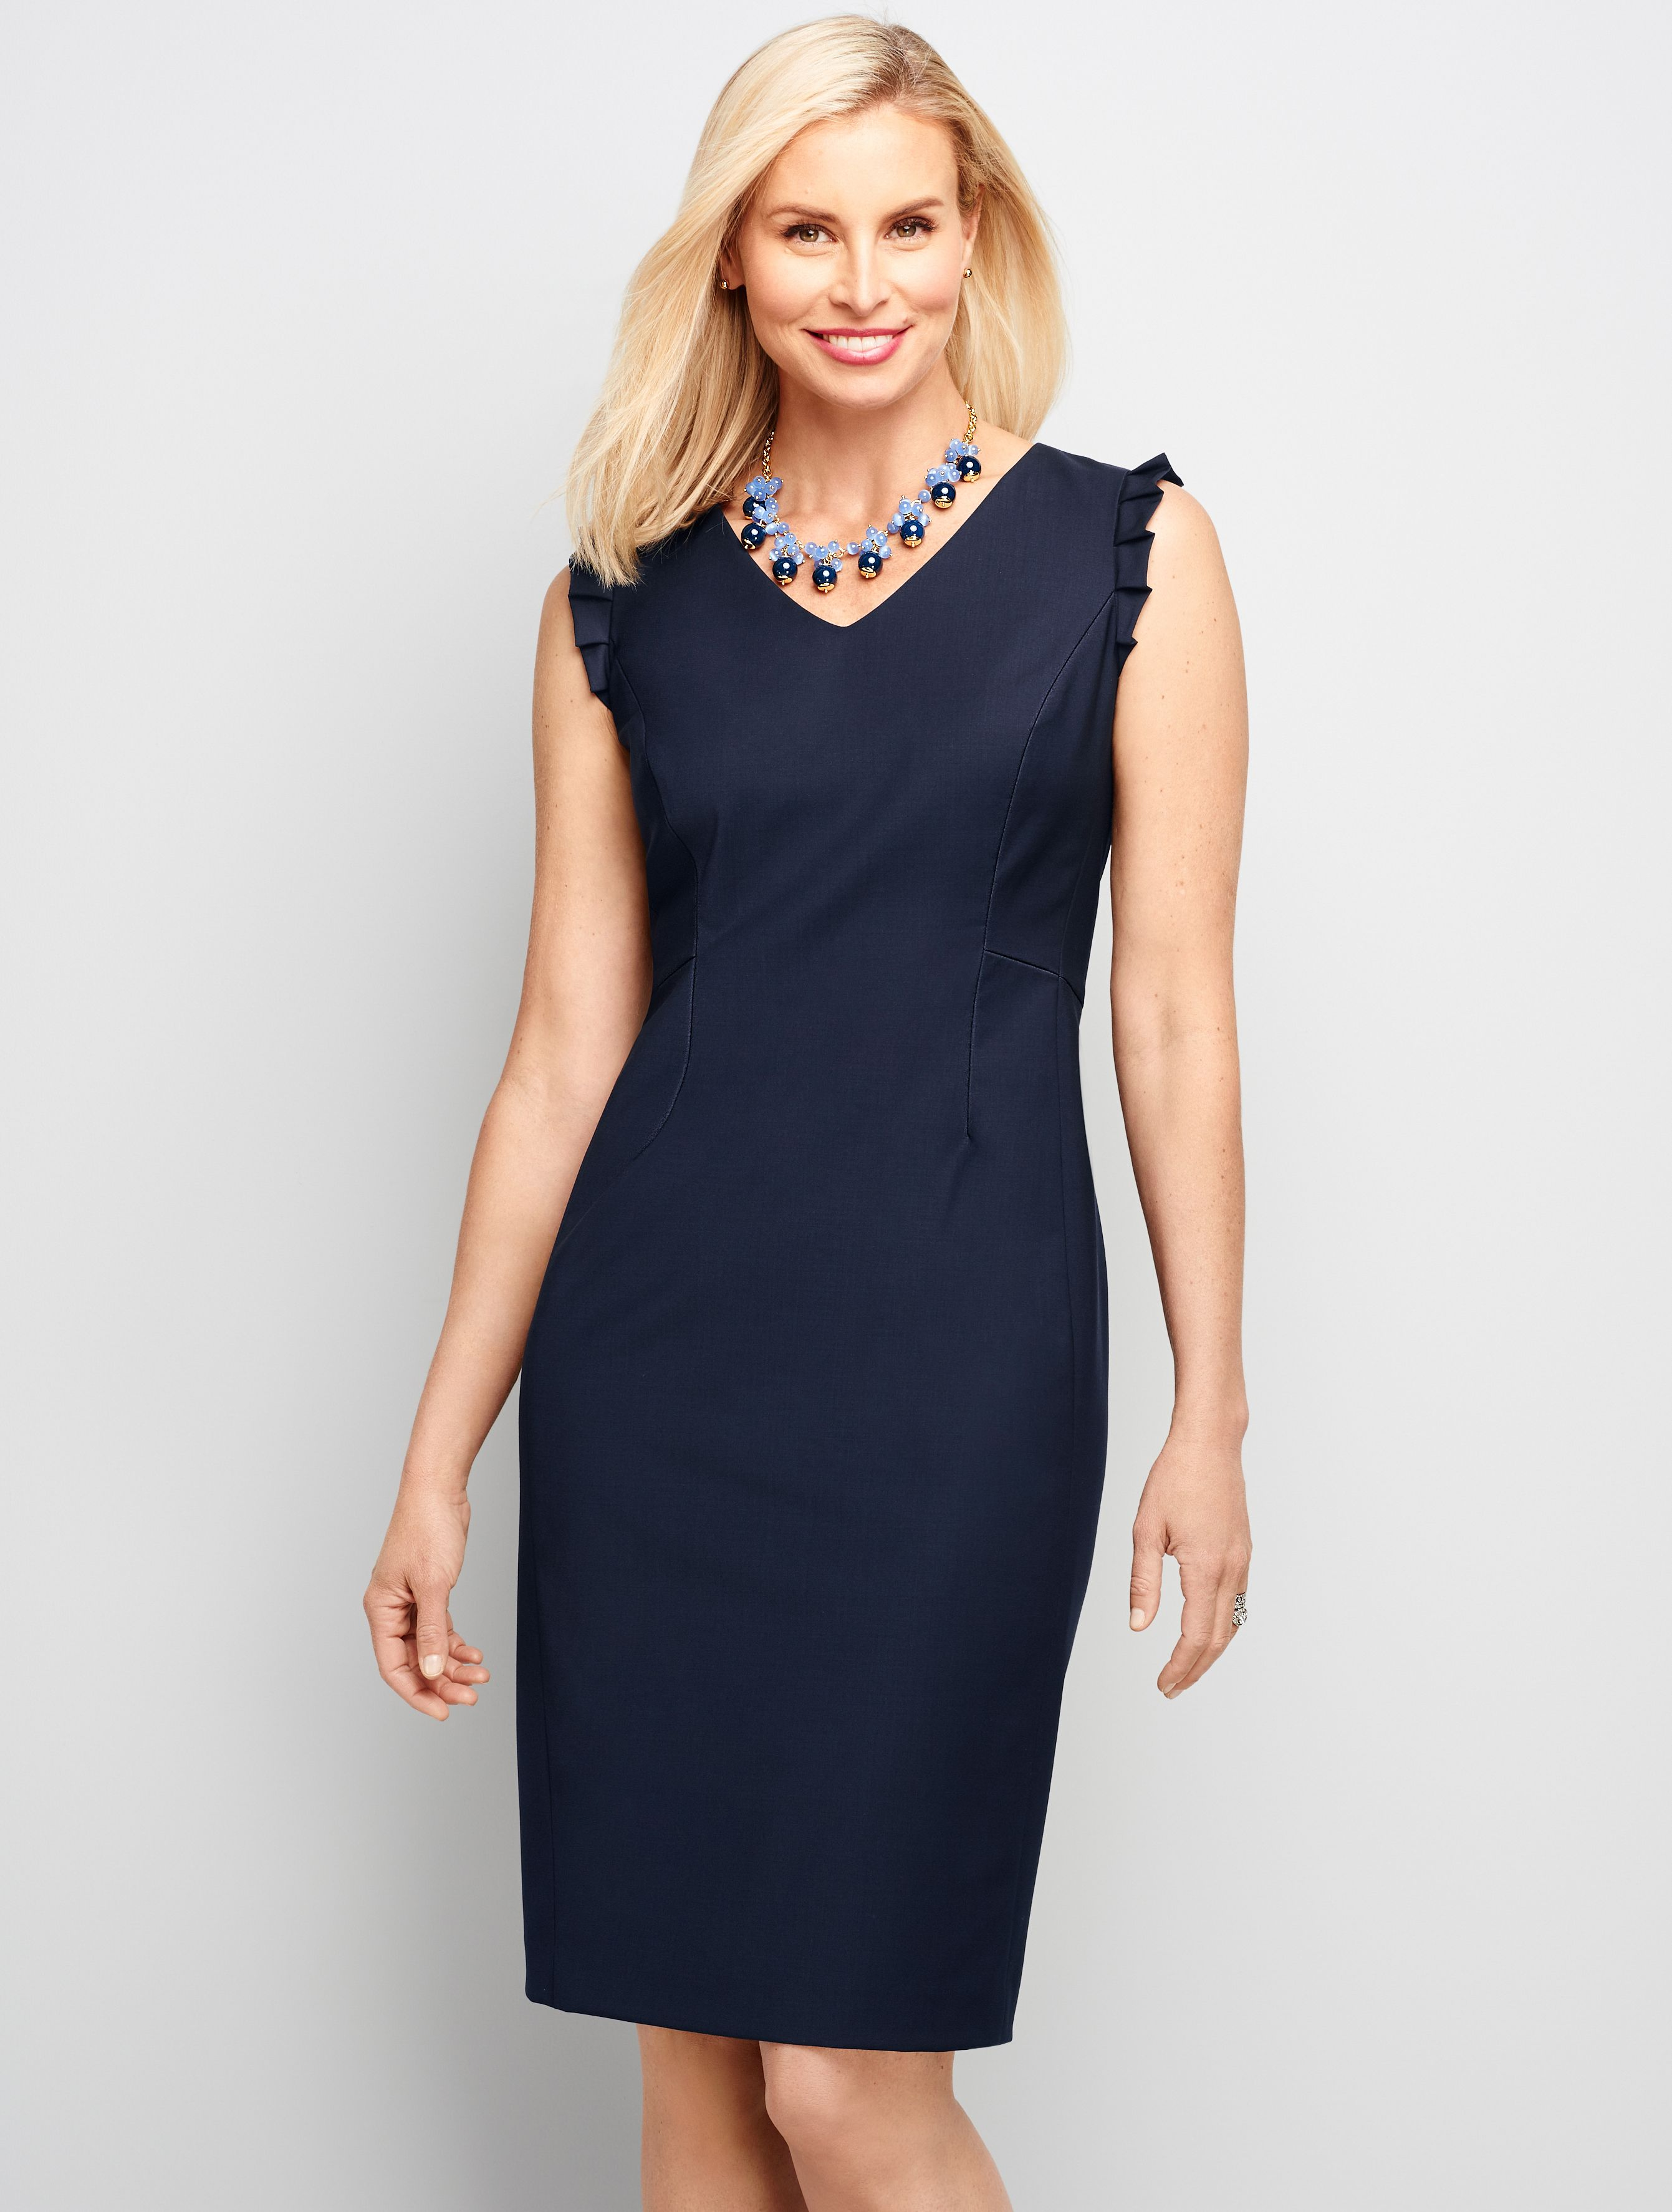 71000552 A classic sleeveless dress with a subtle ruffle detail at the sleeveless  arm opening is the perfect dress on its own or under a cardigan.